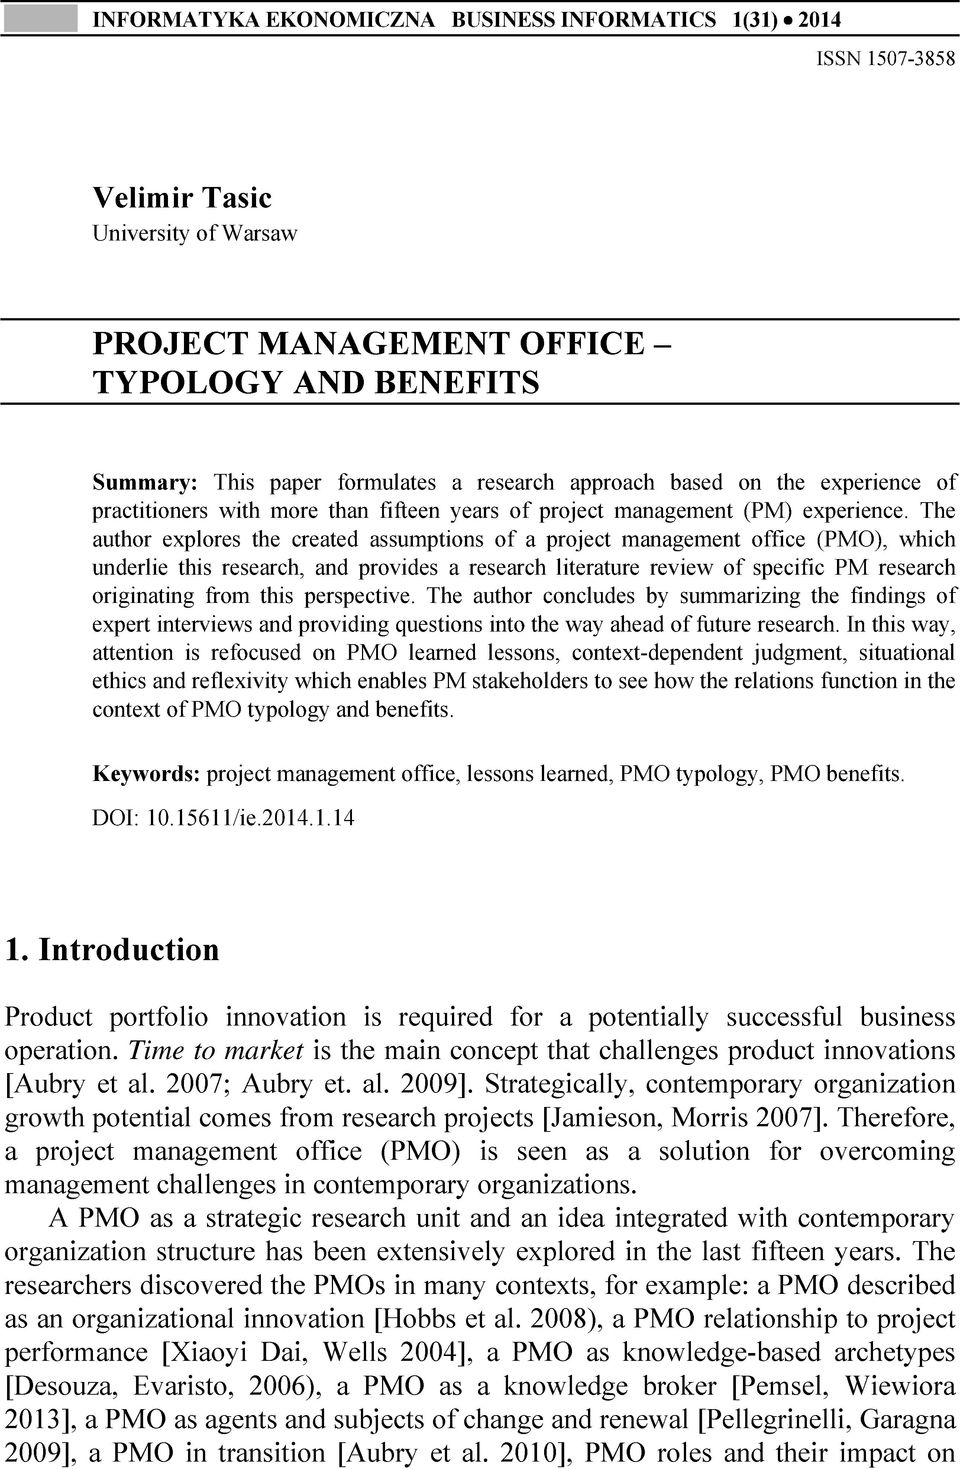 The author explores the created assumptions of a project management office (PMO), which underlie this research, and provides a research literature review of specific PM research originating from this